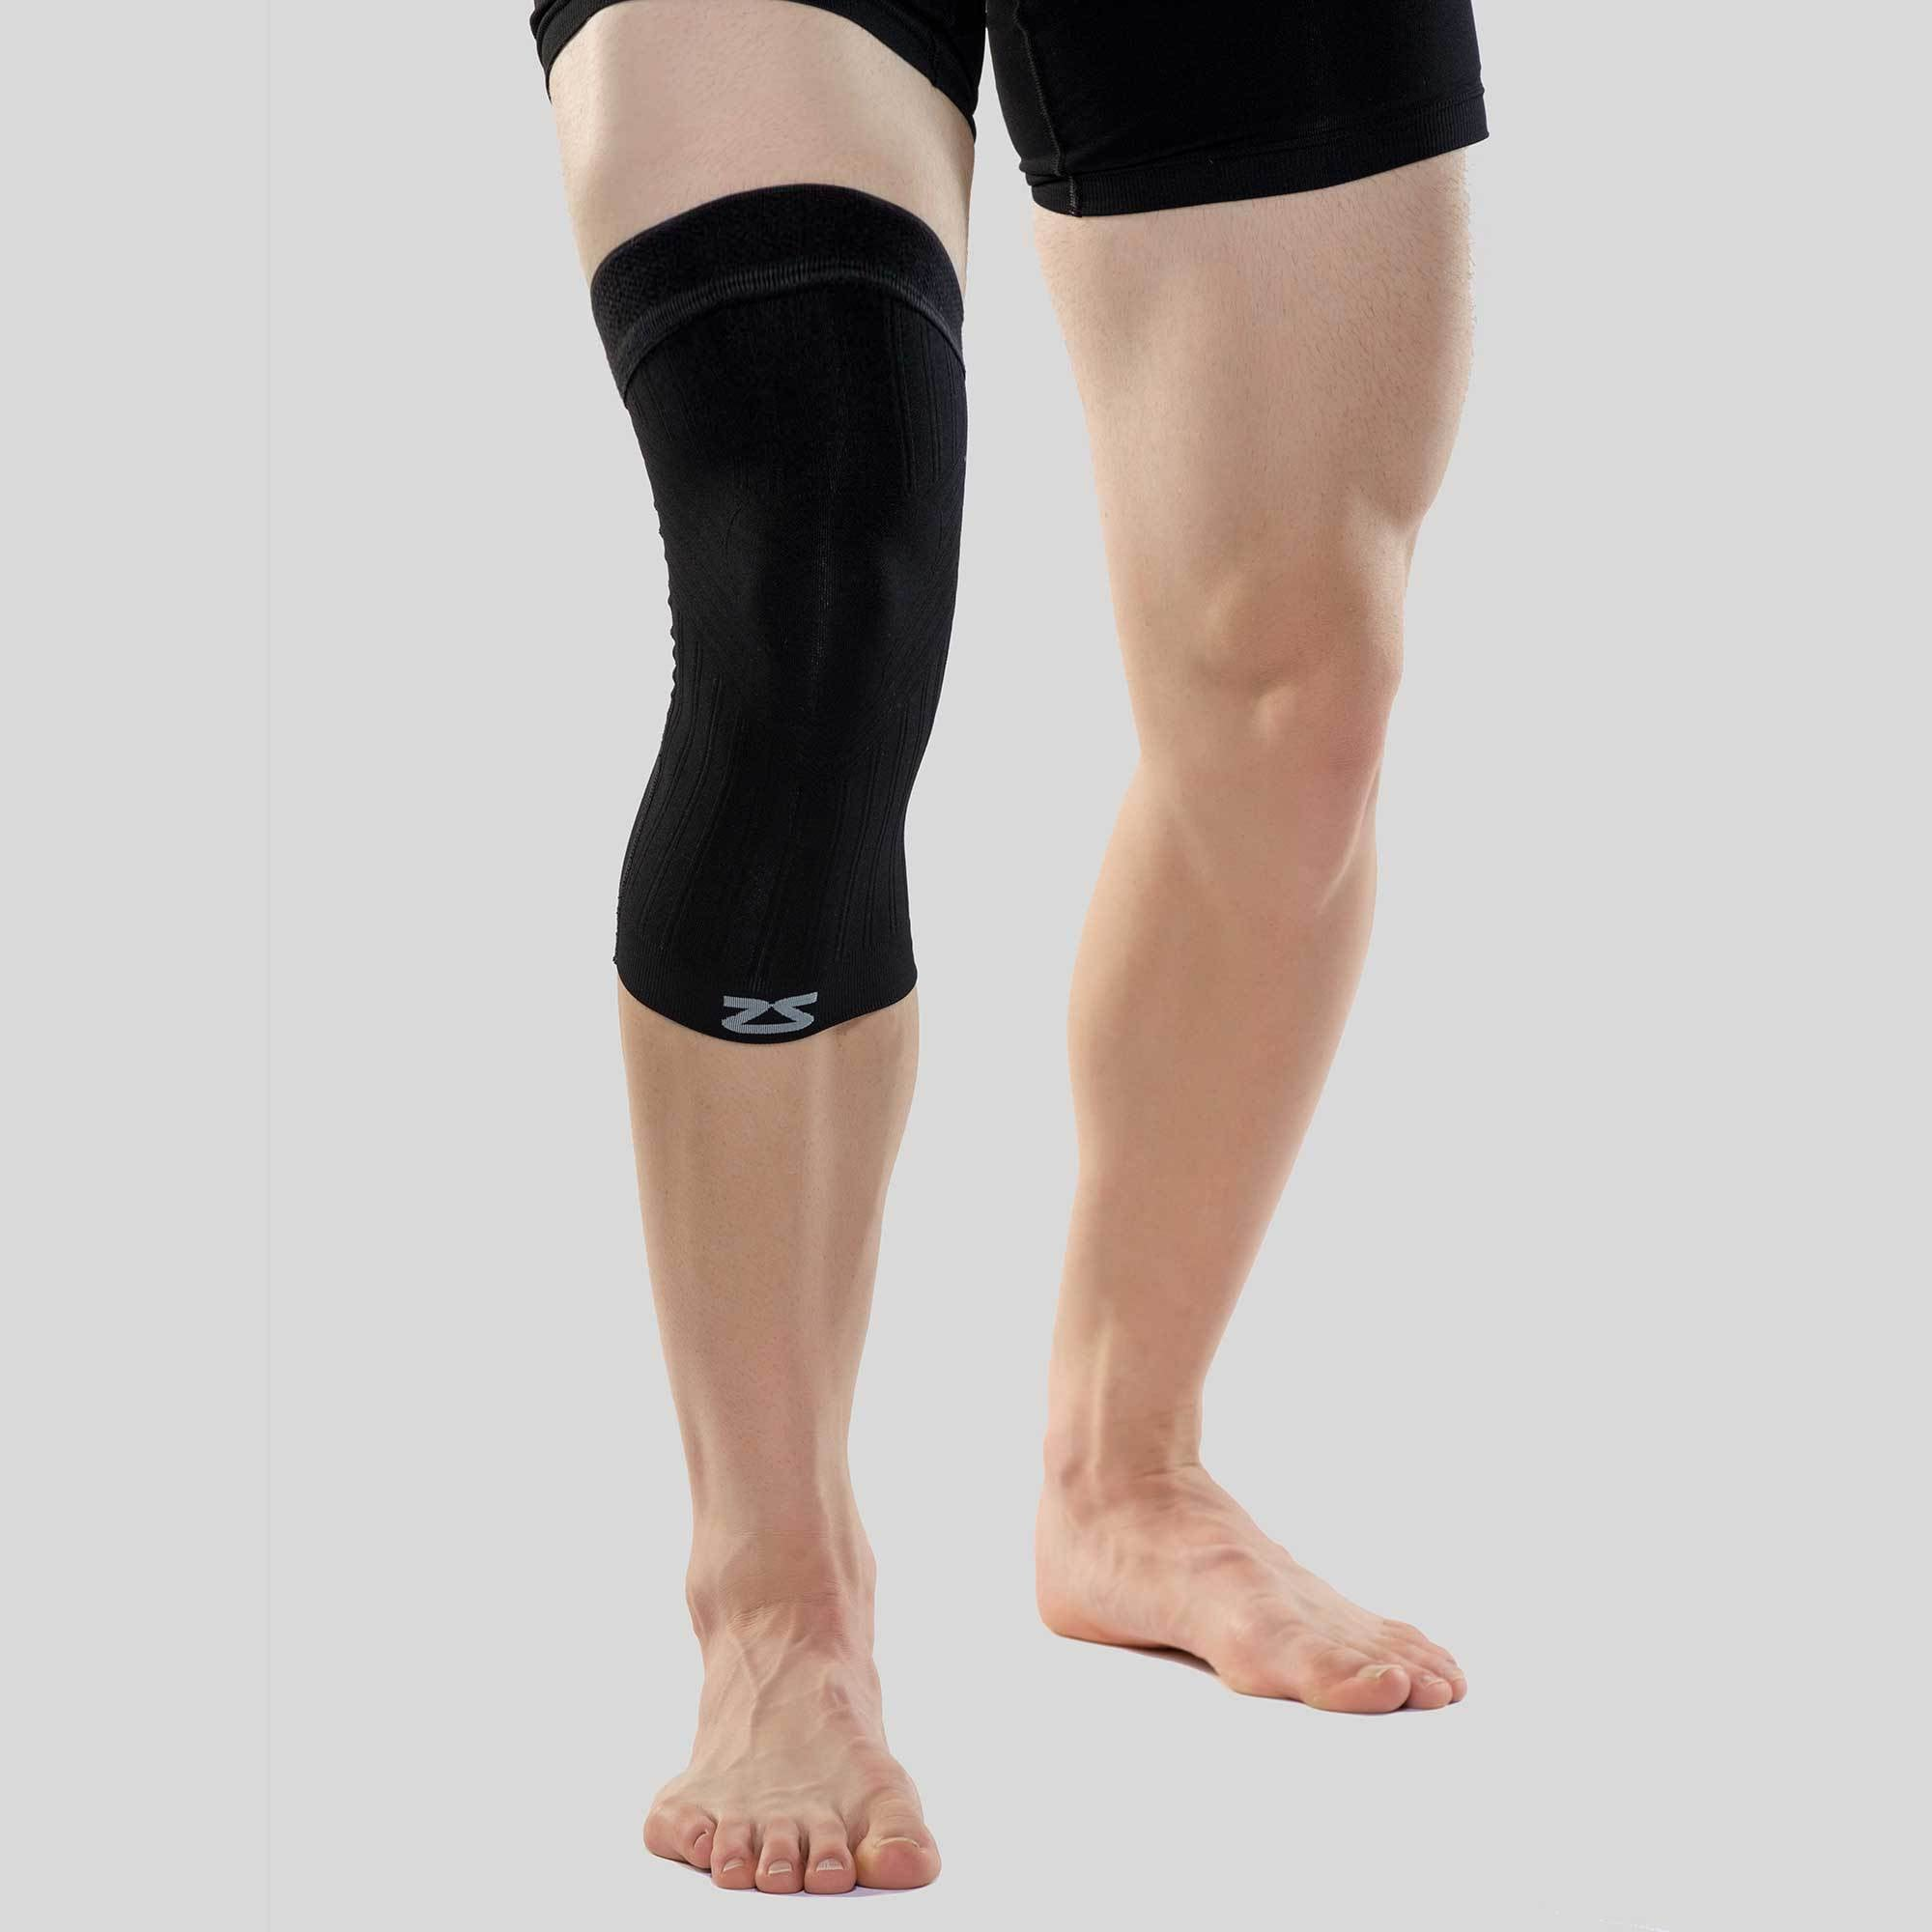 0a30385694 Compression Knee Sleeve - Relieve Knee Pain | Zensah